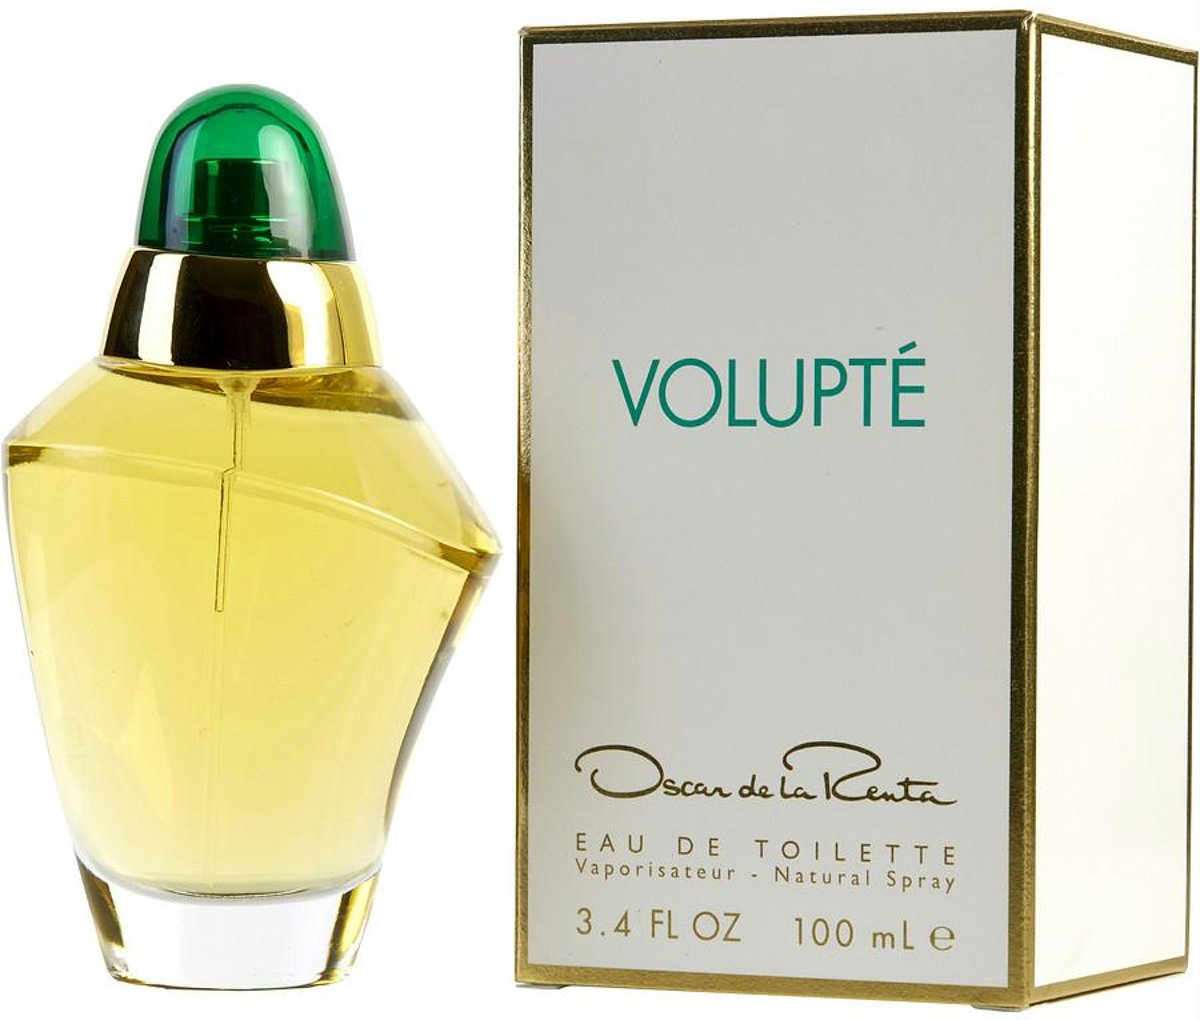 Oscar Volupte for Woman - 100 ml - Eau de toilette